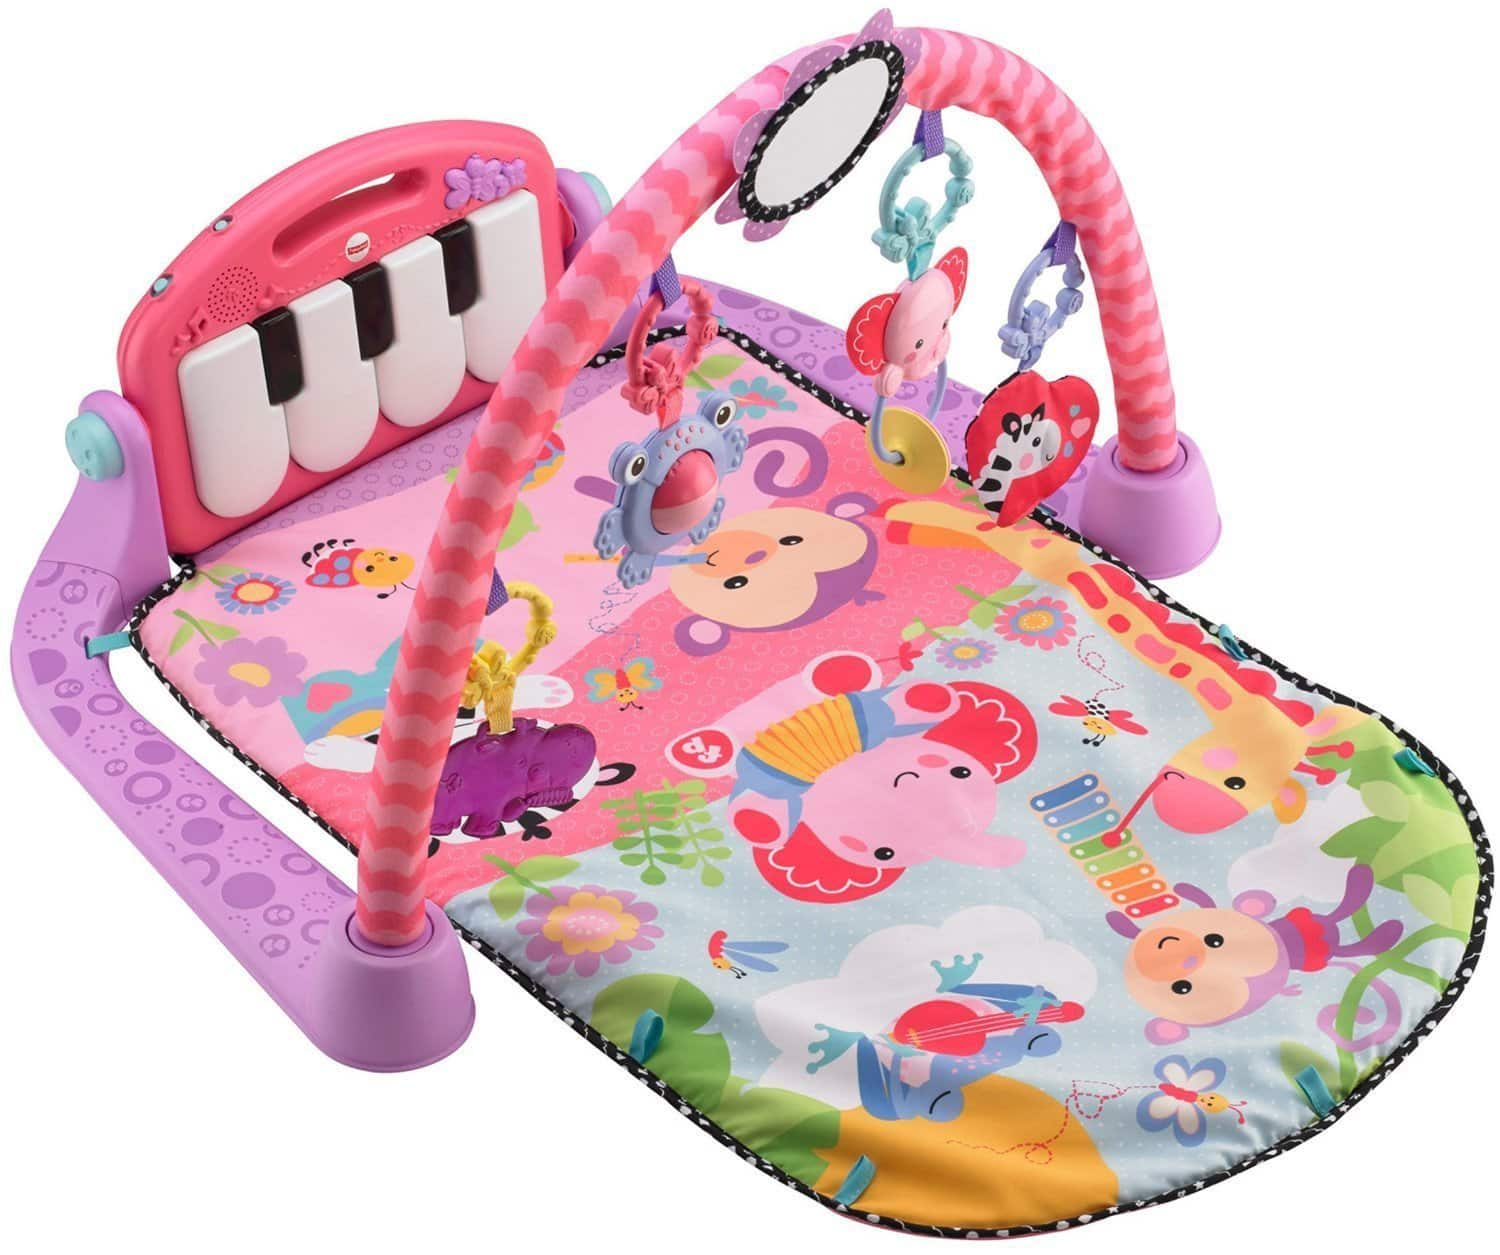 Fisher-Price: Kick and Play Piano Gym (Pink)  $27 & More